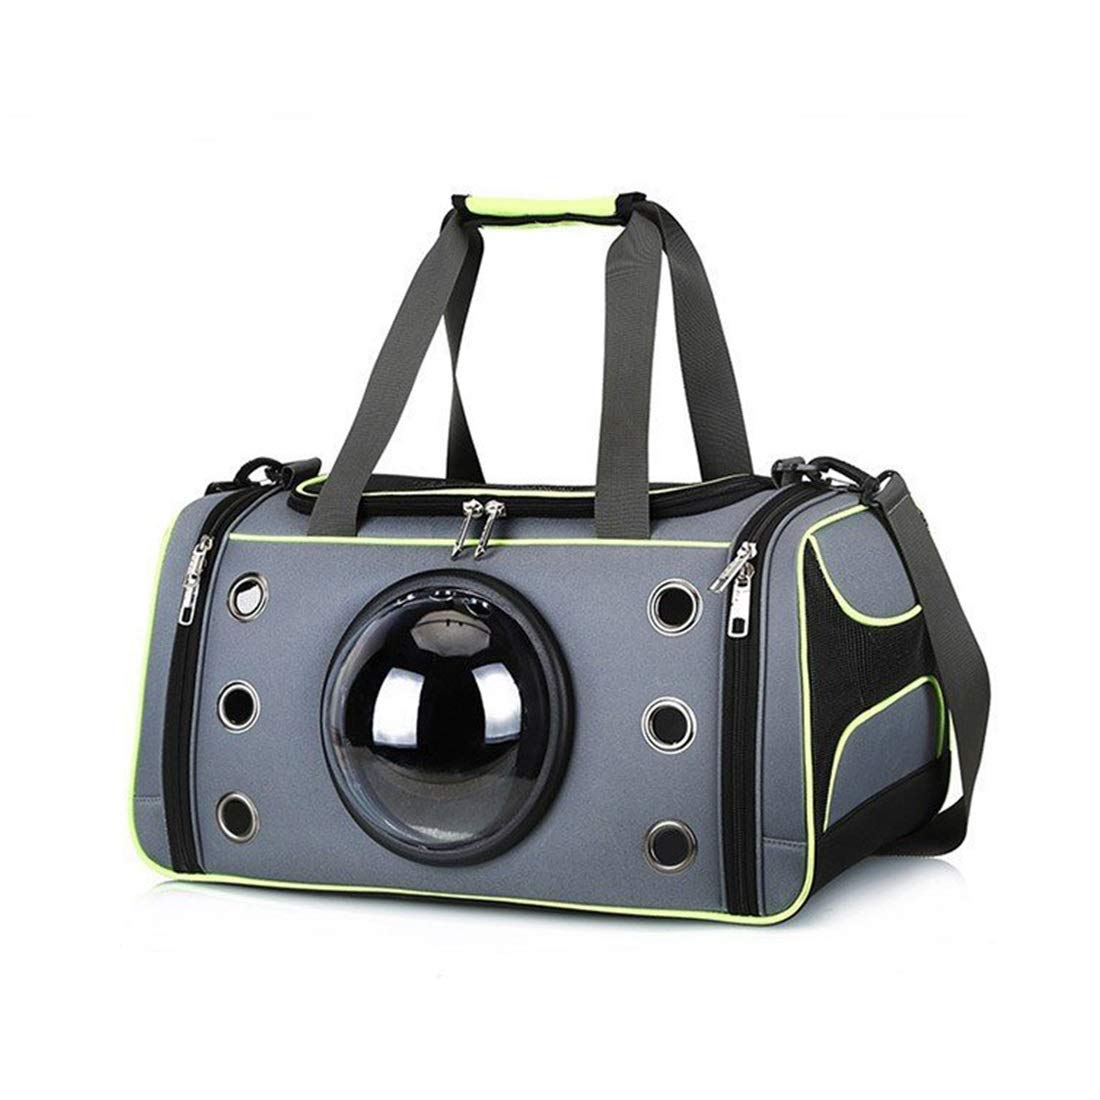 Fluorescent green L Fluorescent green L RABILTY Pet Bag Out Carrying Case Space Capsule Portable Bag Cat Handbag Breathable Dog Out Bag (color   Fluorescent Green, Size   L)